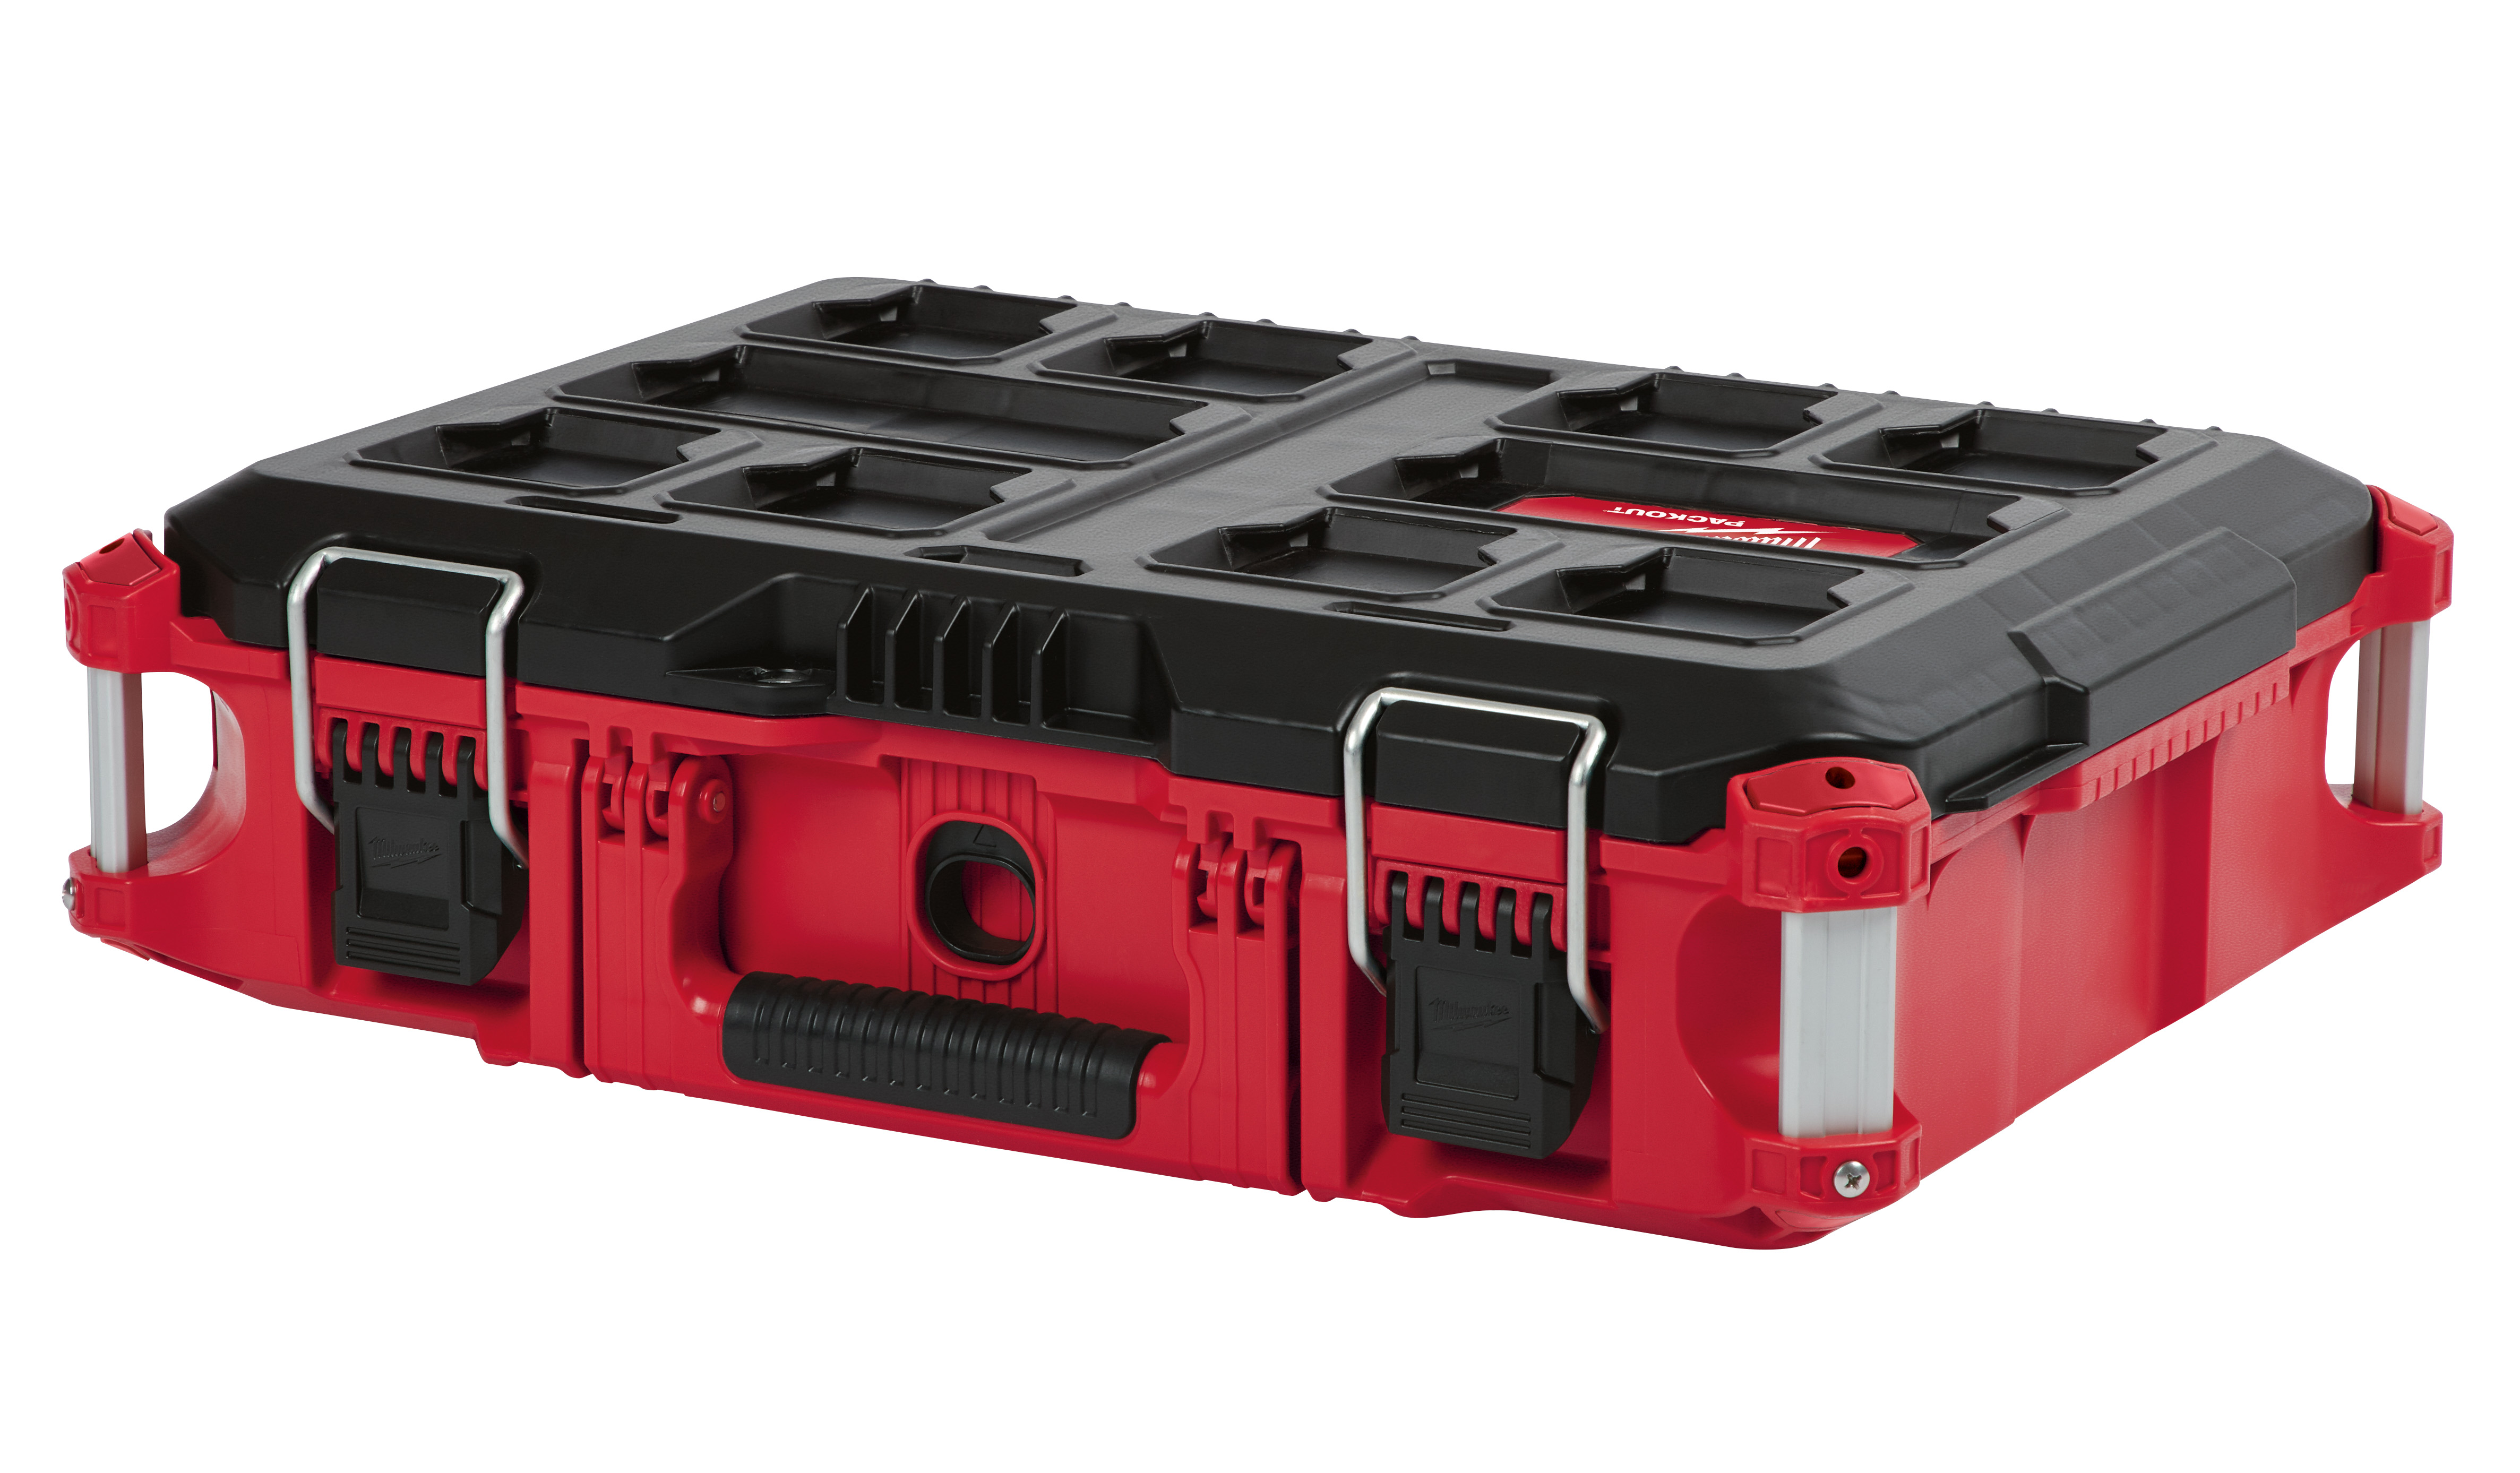 Milwaukee® PACKOUT™ 48-22-8424 Waterproof Flip Latch Tool Box, 6.6 in H x 16.1 in W x 22.1 in D